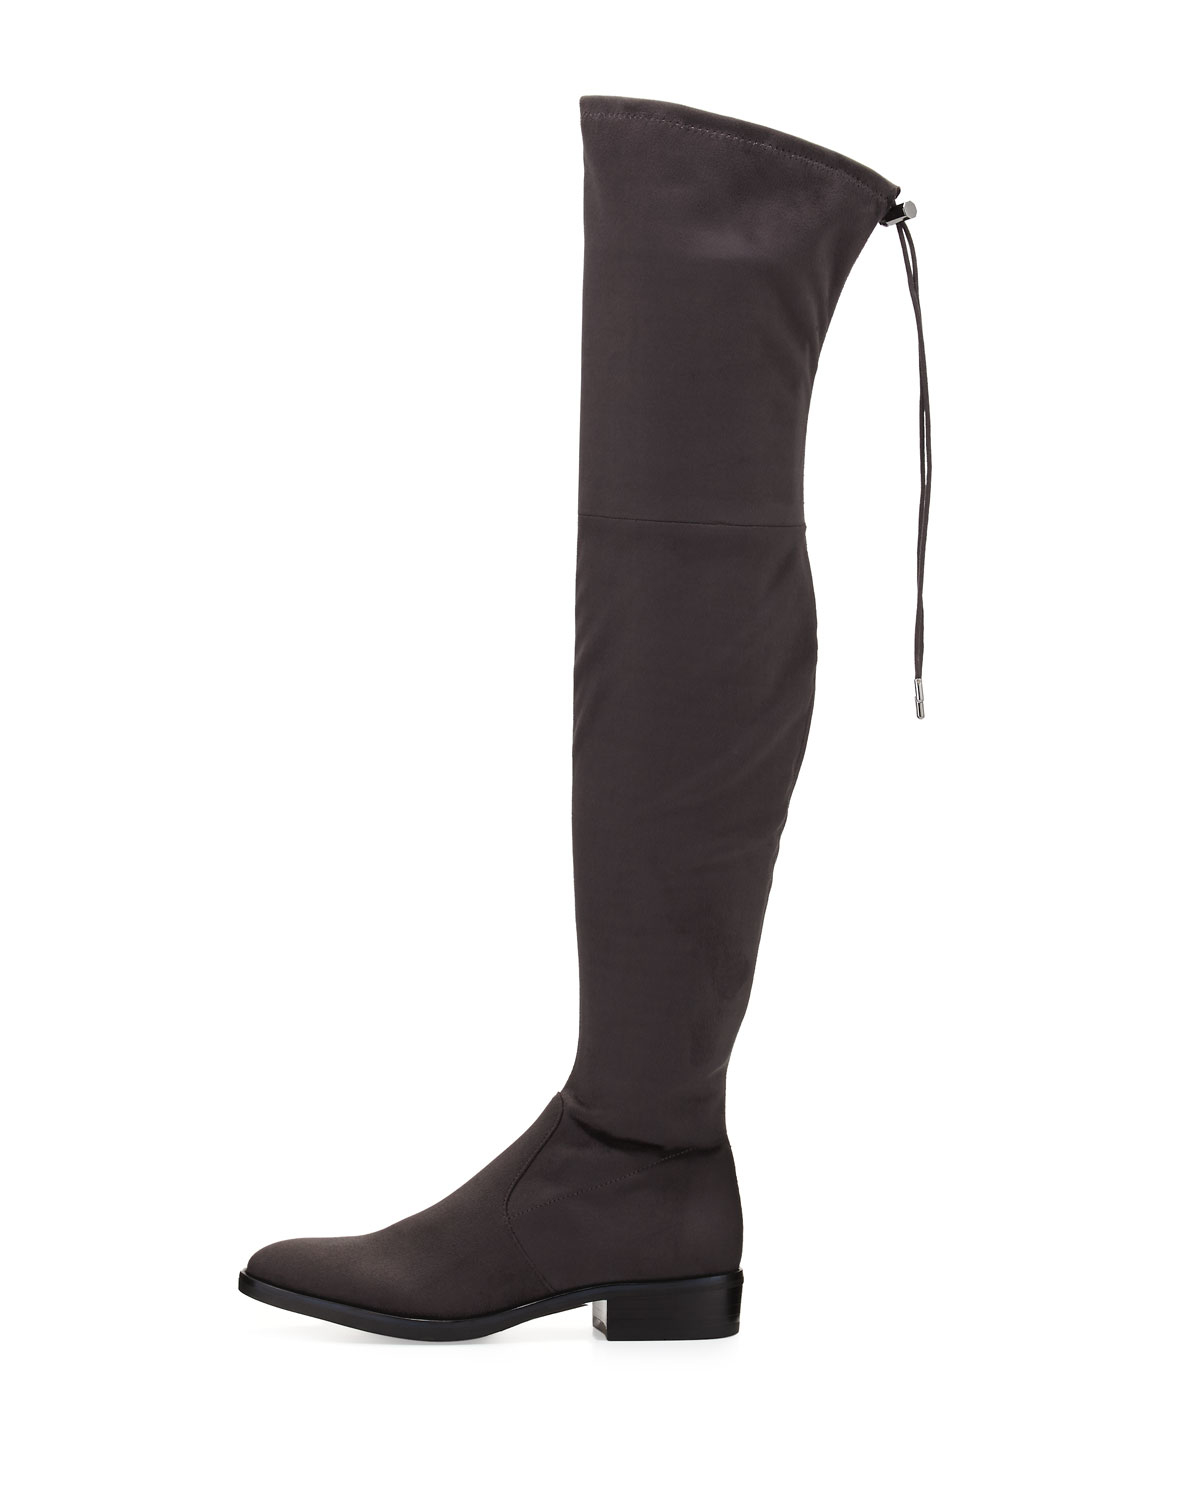 be3d6f0b850 Lyst - Sam Edelman Paloma Suede Over-the-knee Boot in Gray